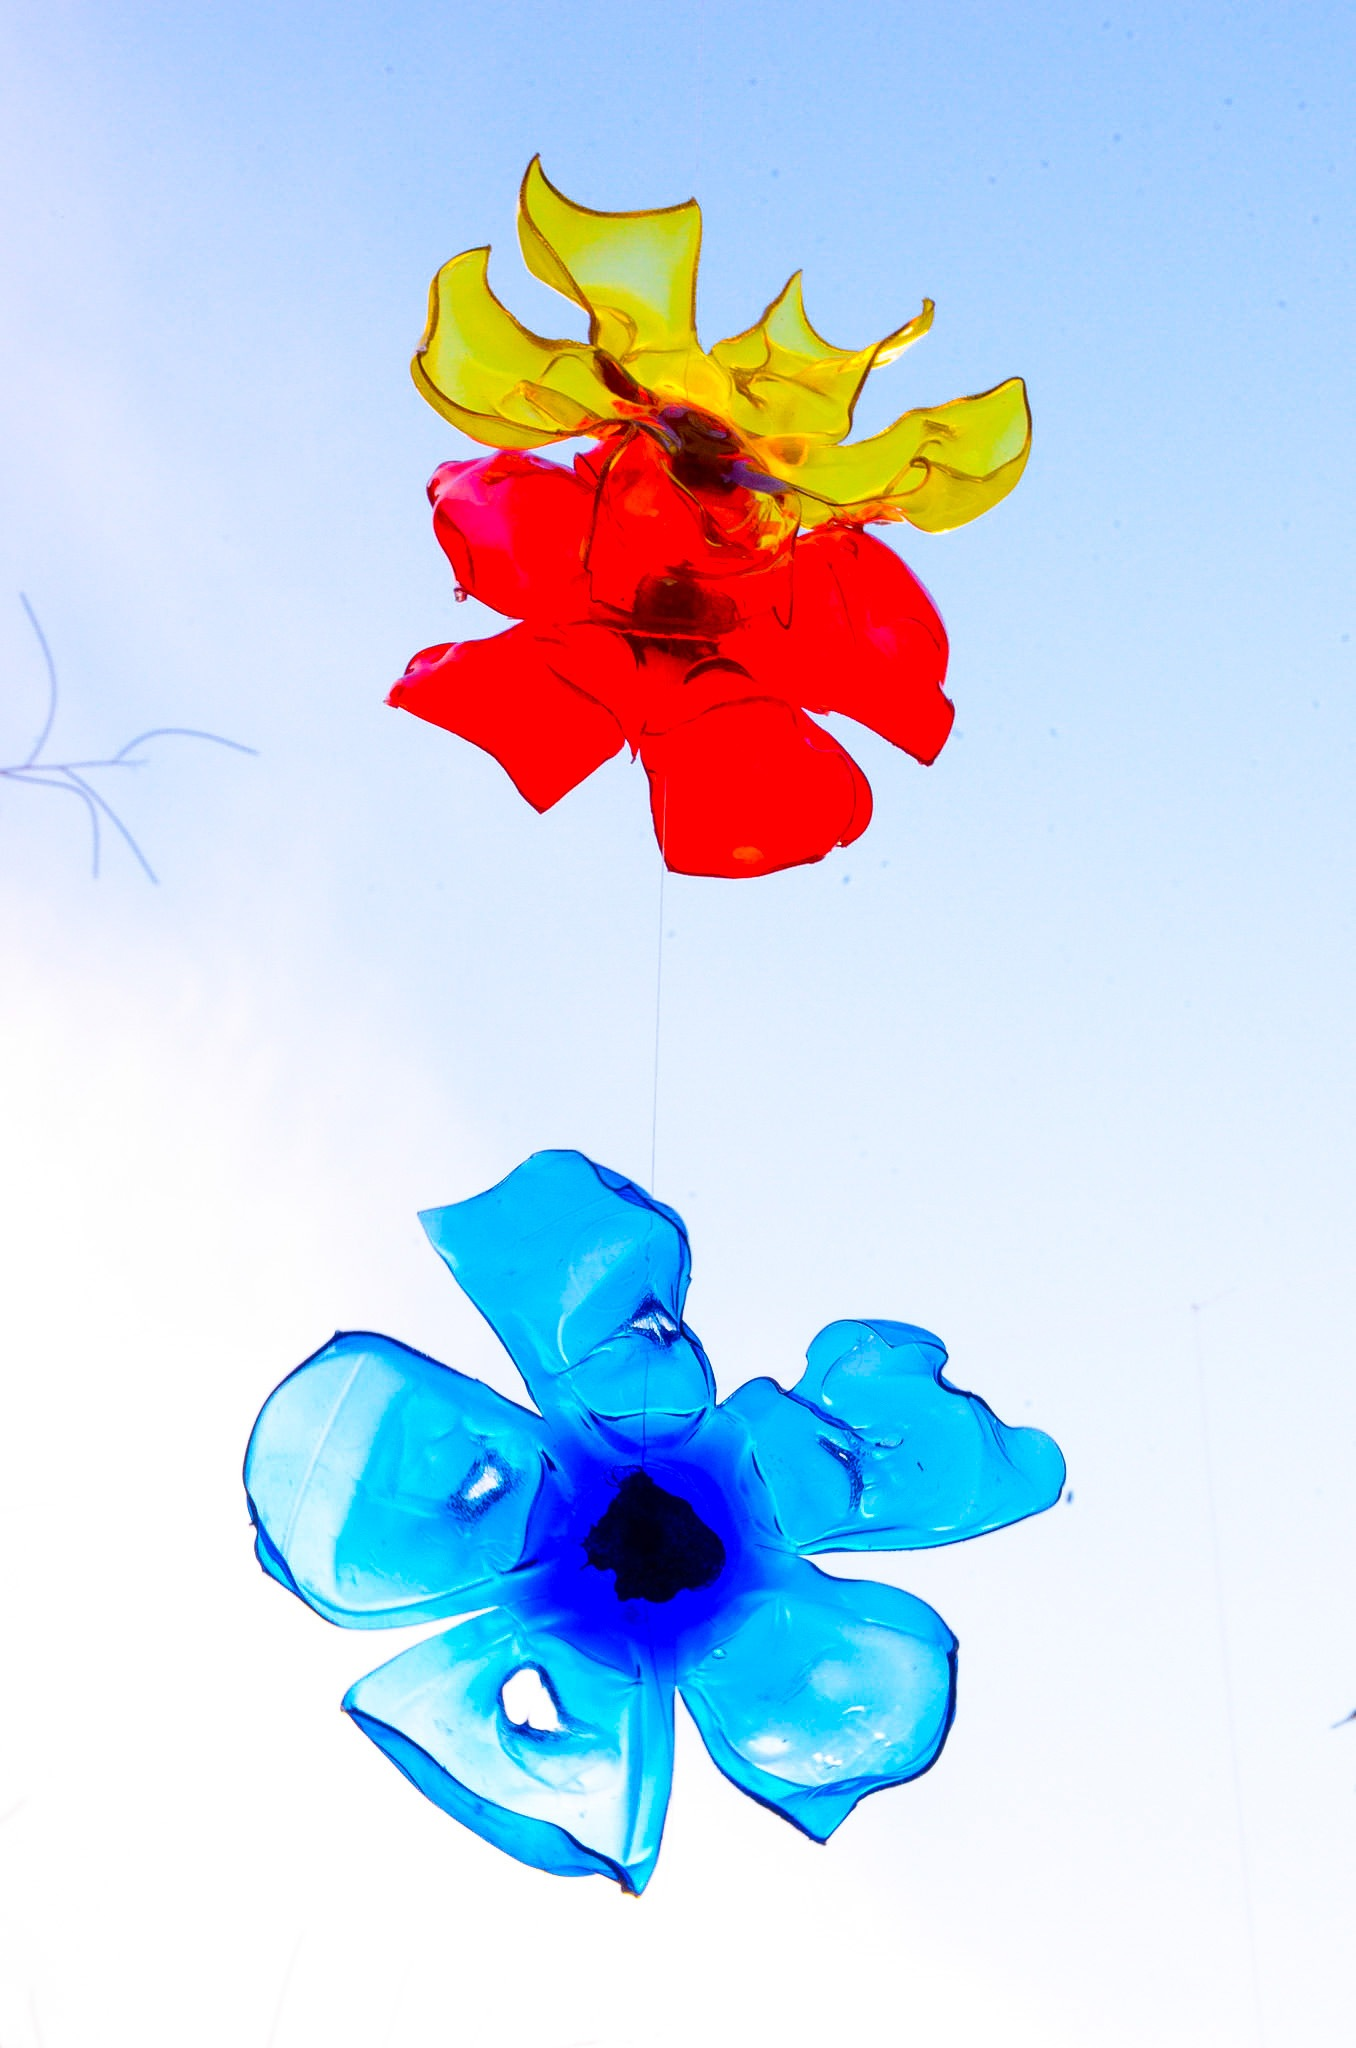 flowers in the sky by Pierina Mariani